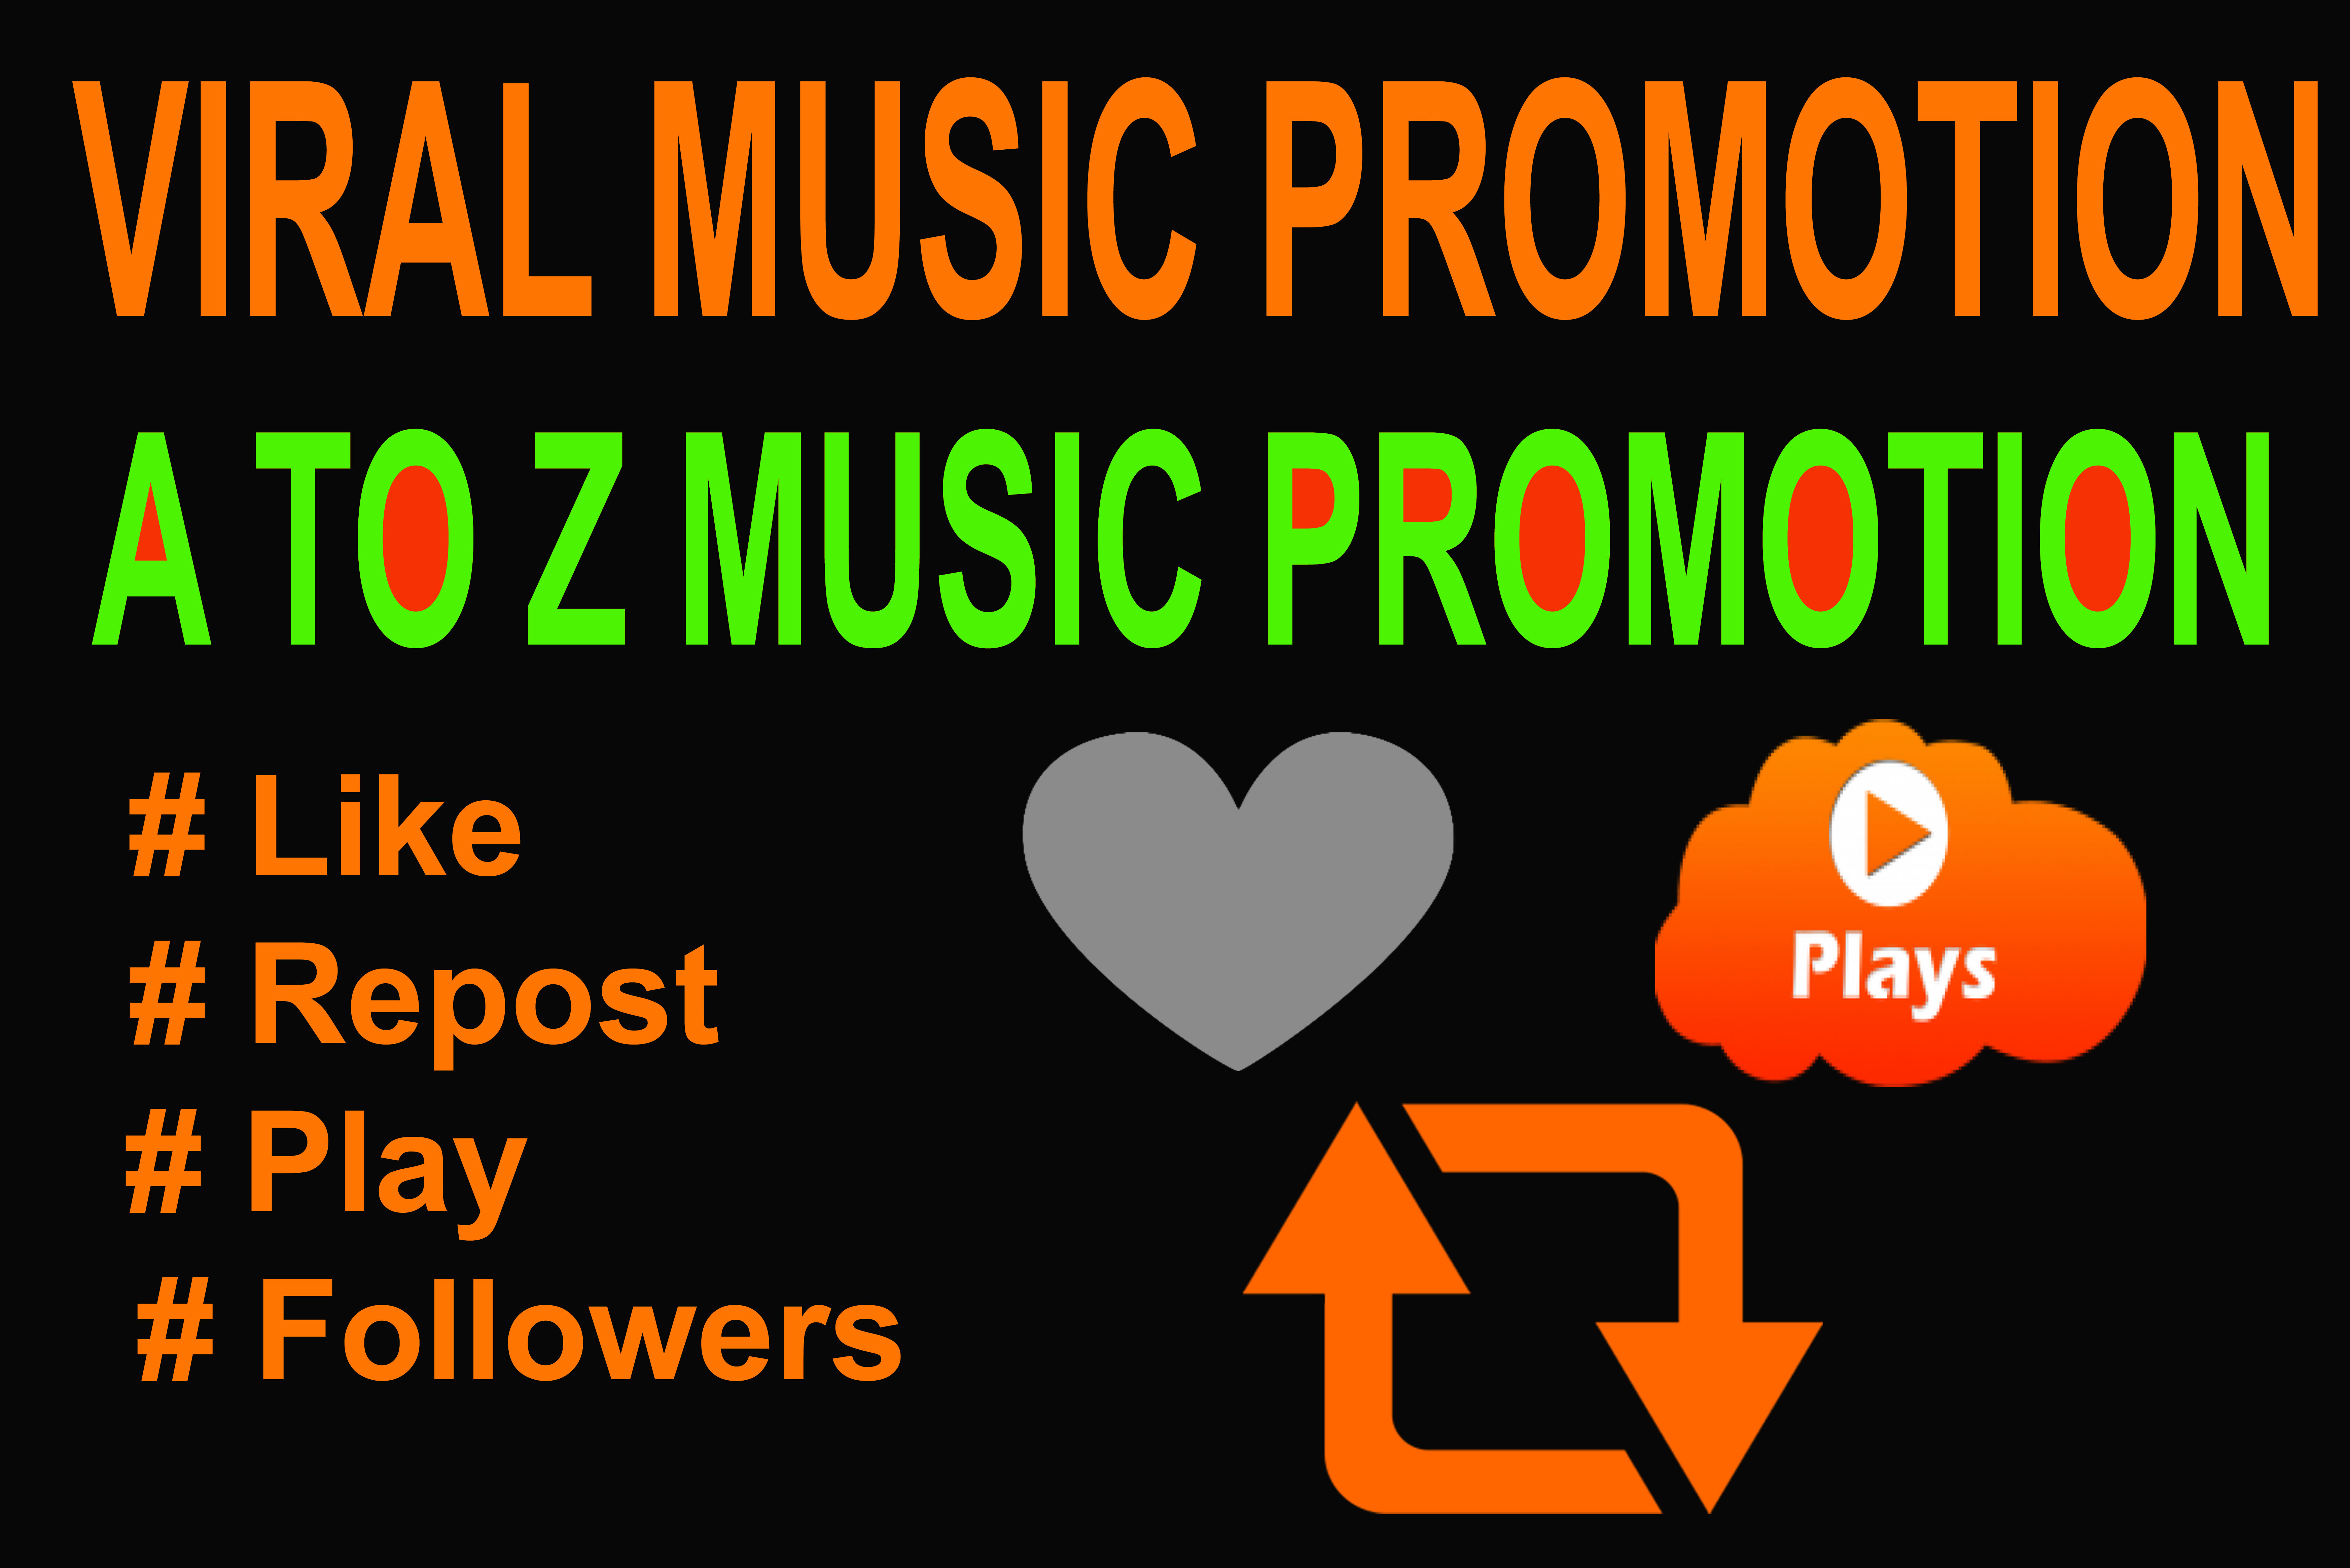 Music Promotion 1 Million USA Music Play With 500 Llke 500 Re-post & 100 C0mments Very Fast Delivery